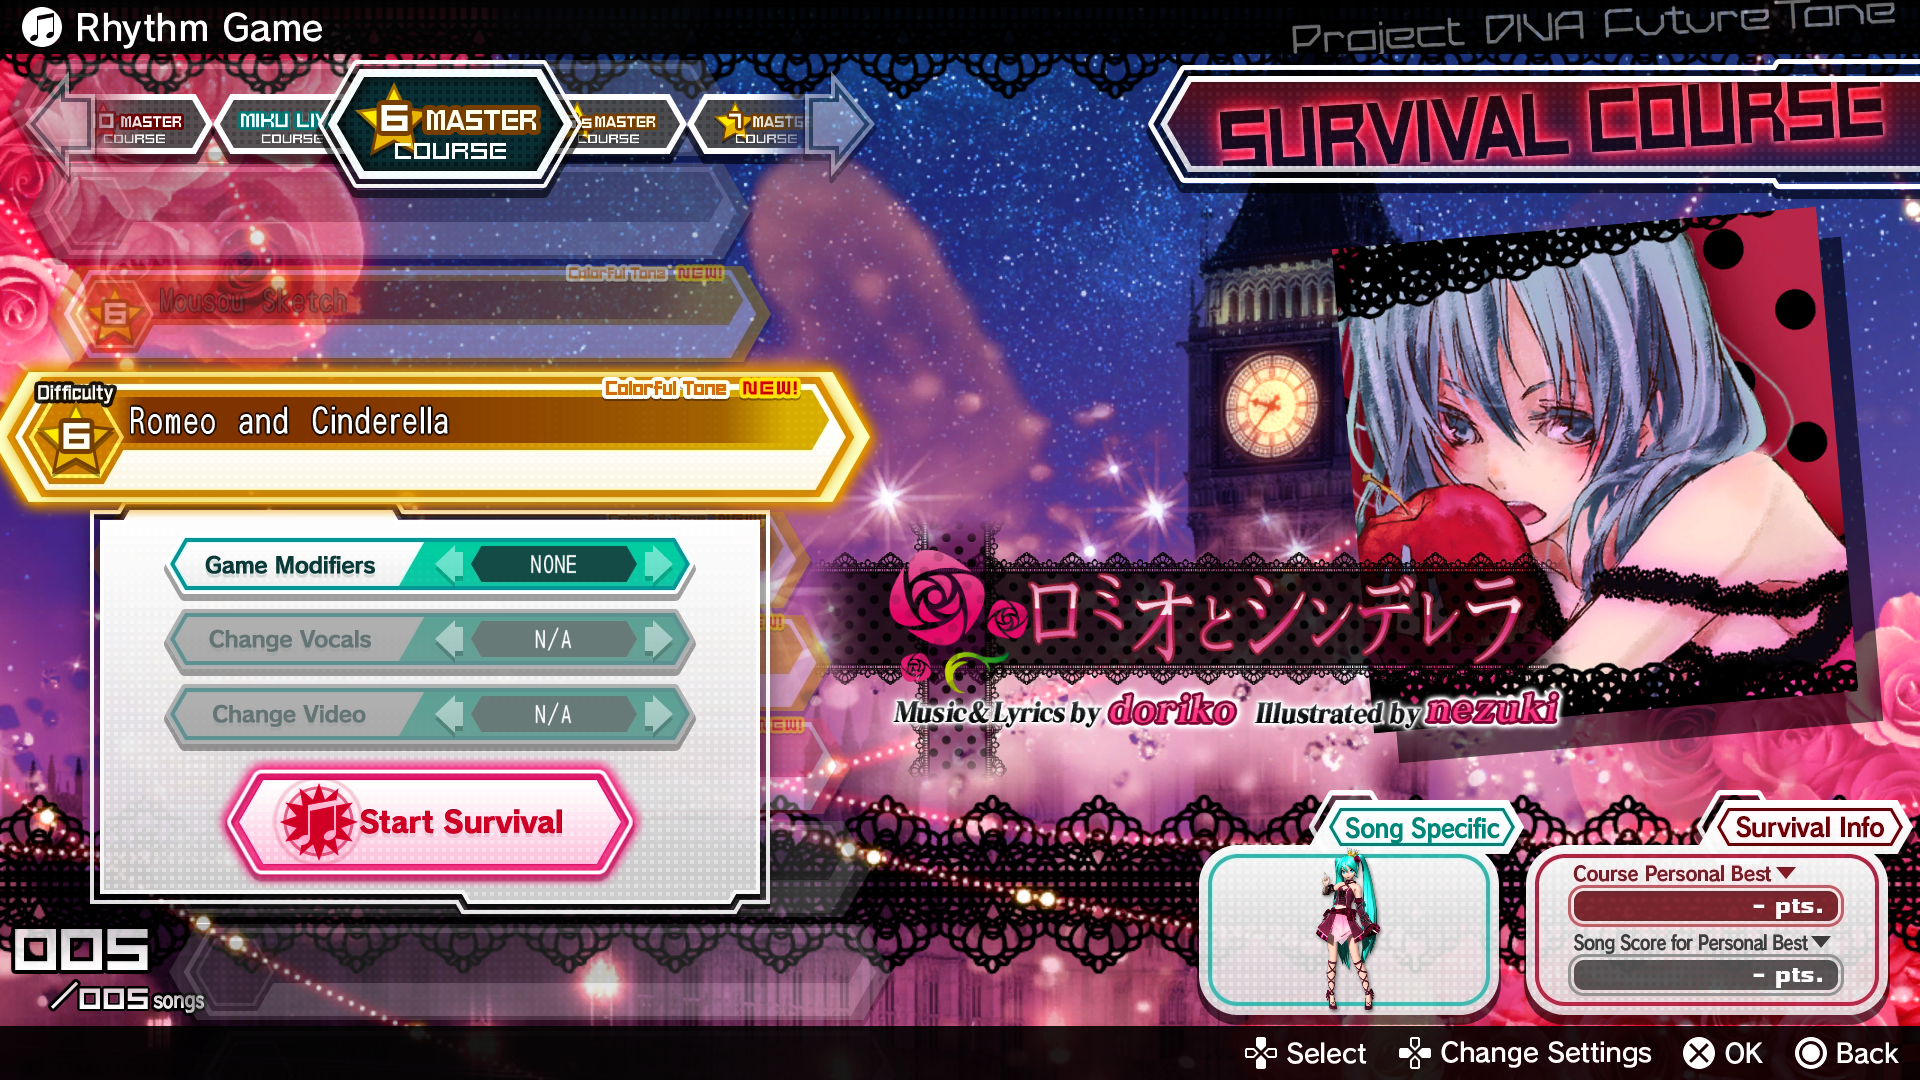 Web Manual Hatsune Miku Project Diva Future Tone Switch Beside The Pot Is Used To Be Able Off All And Press Confirm